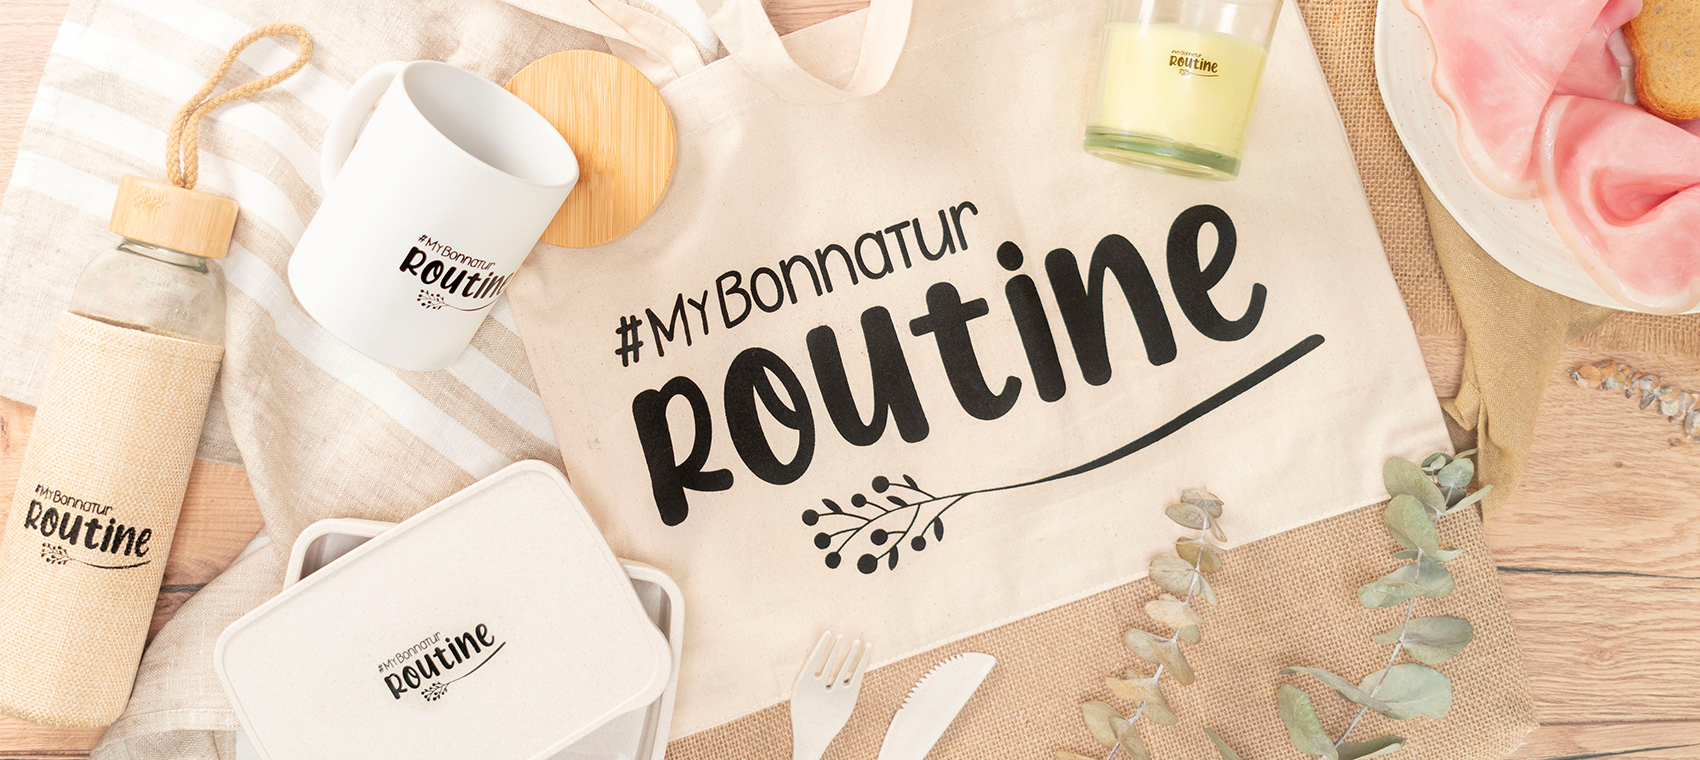 My-bonnatur-routine